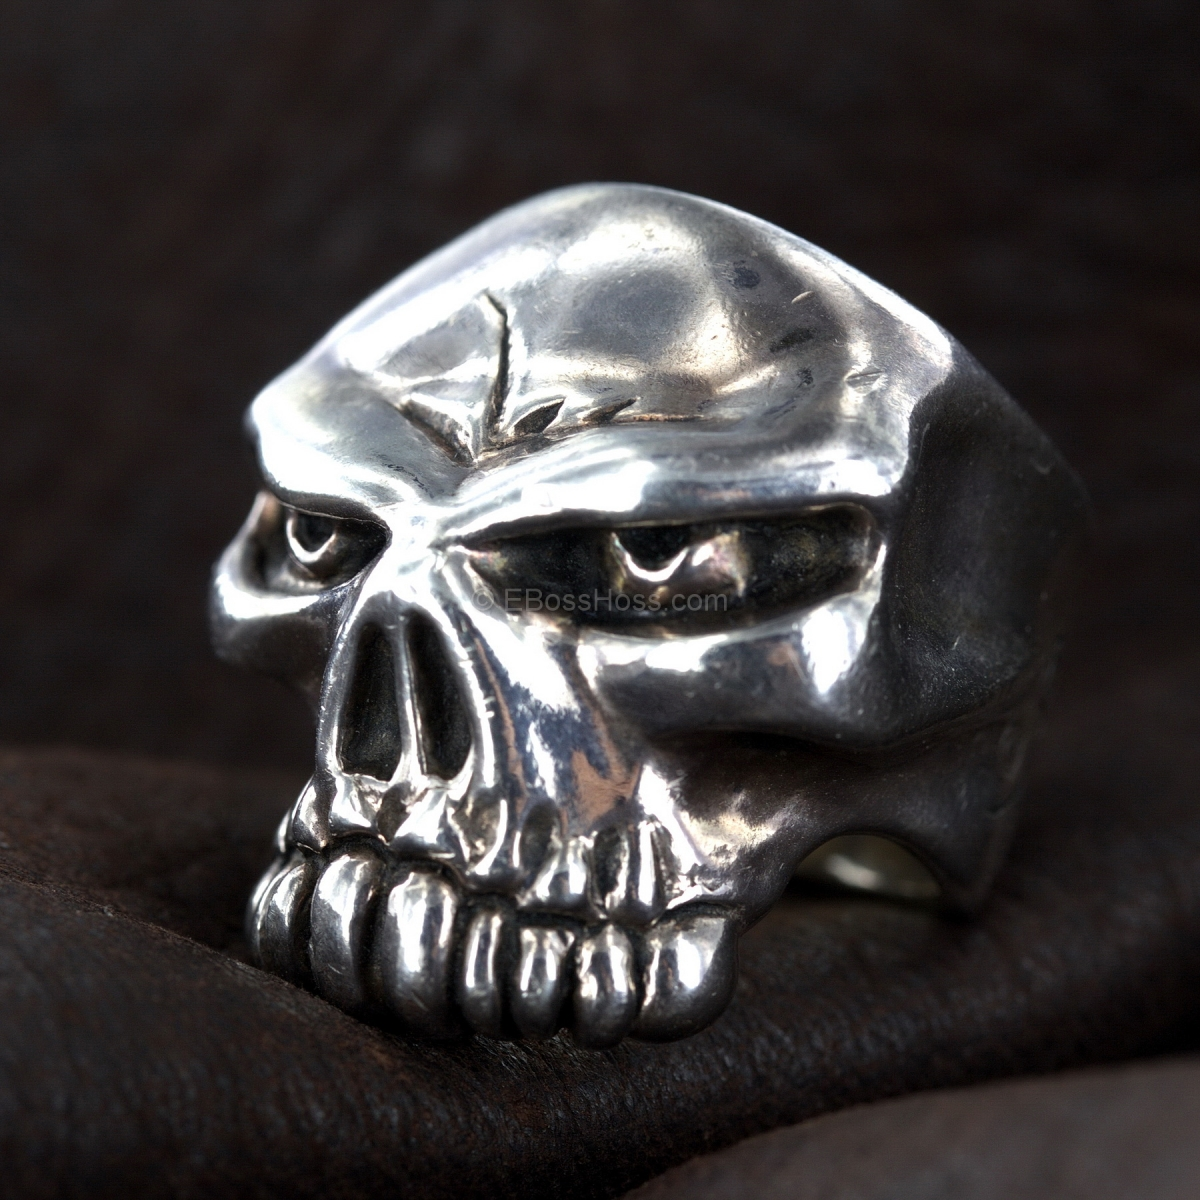 Emerson Custom Bad Intent Ring by Starlingear